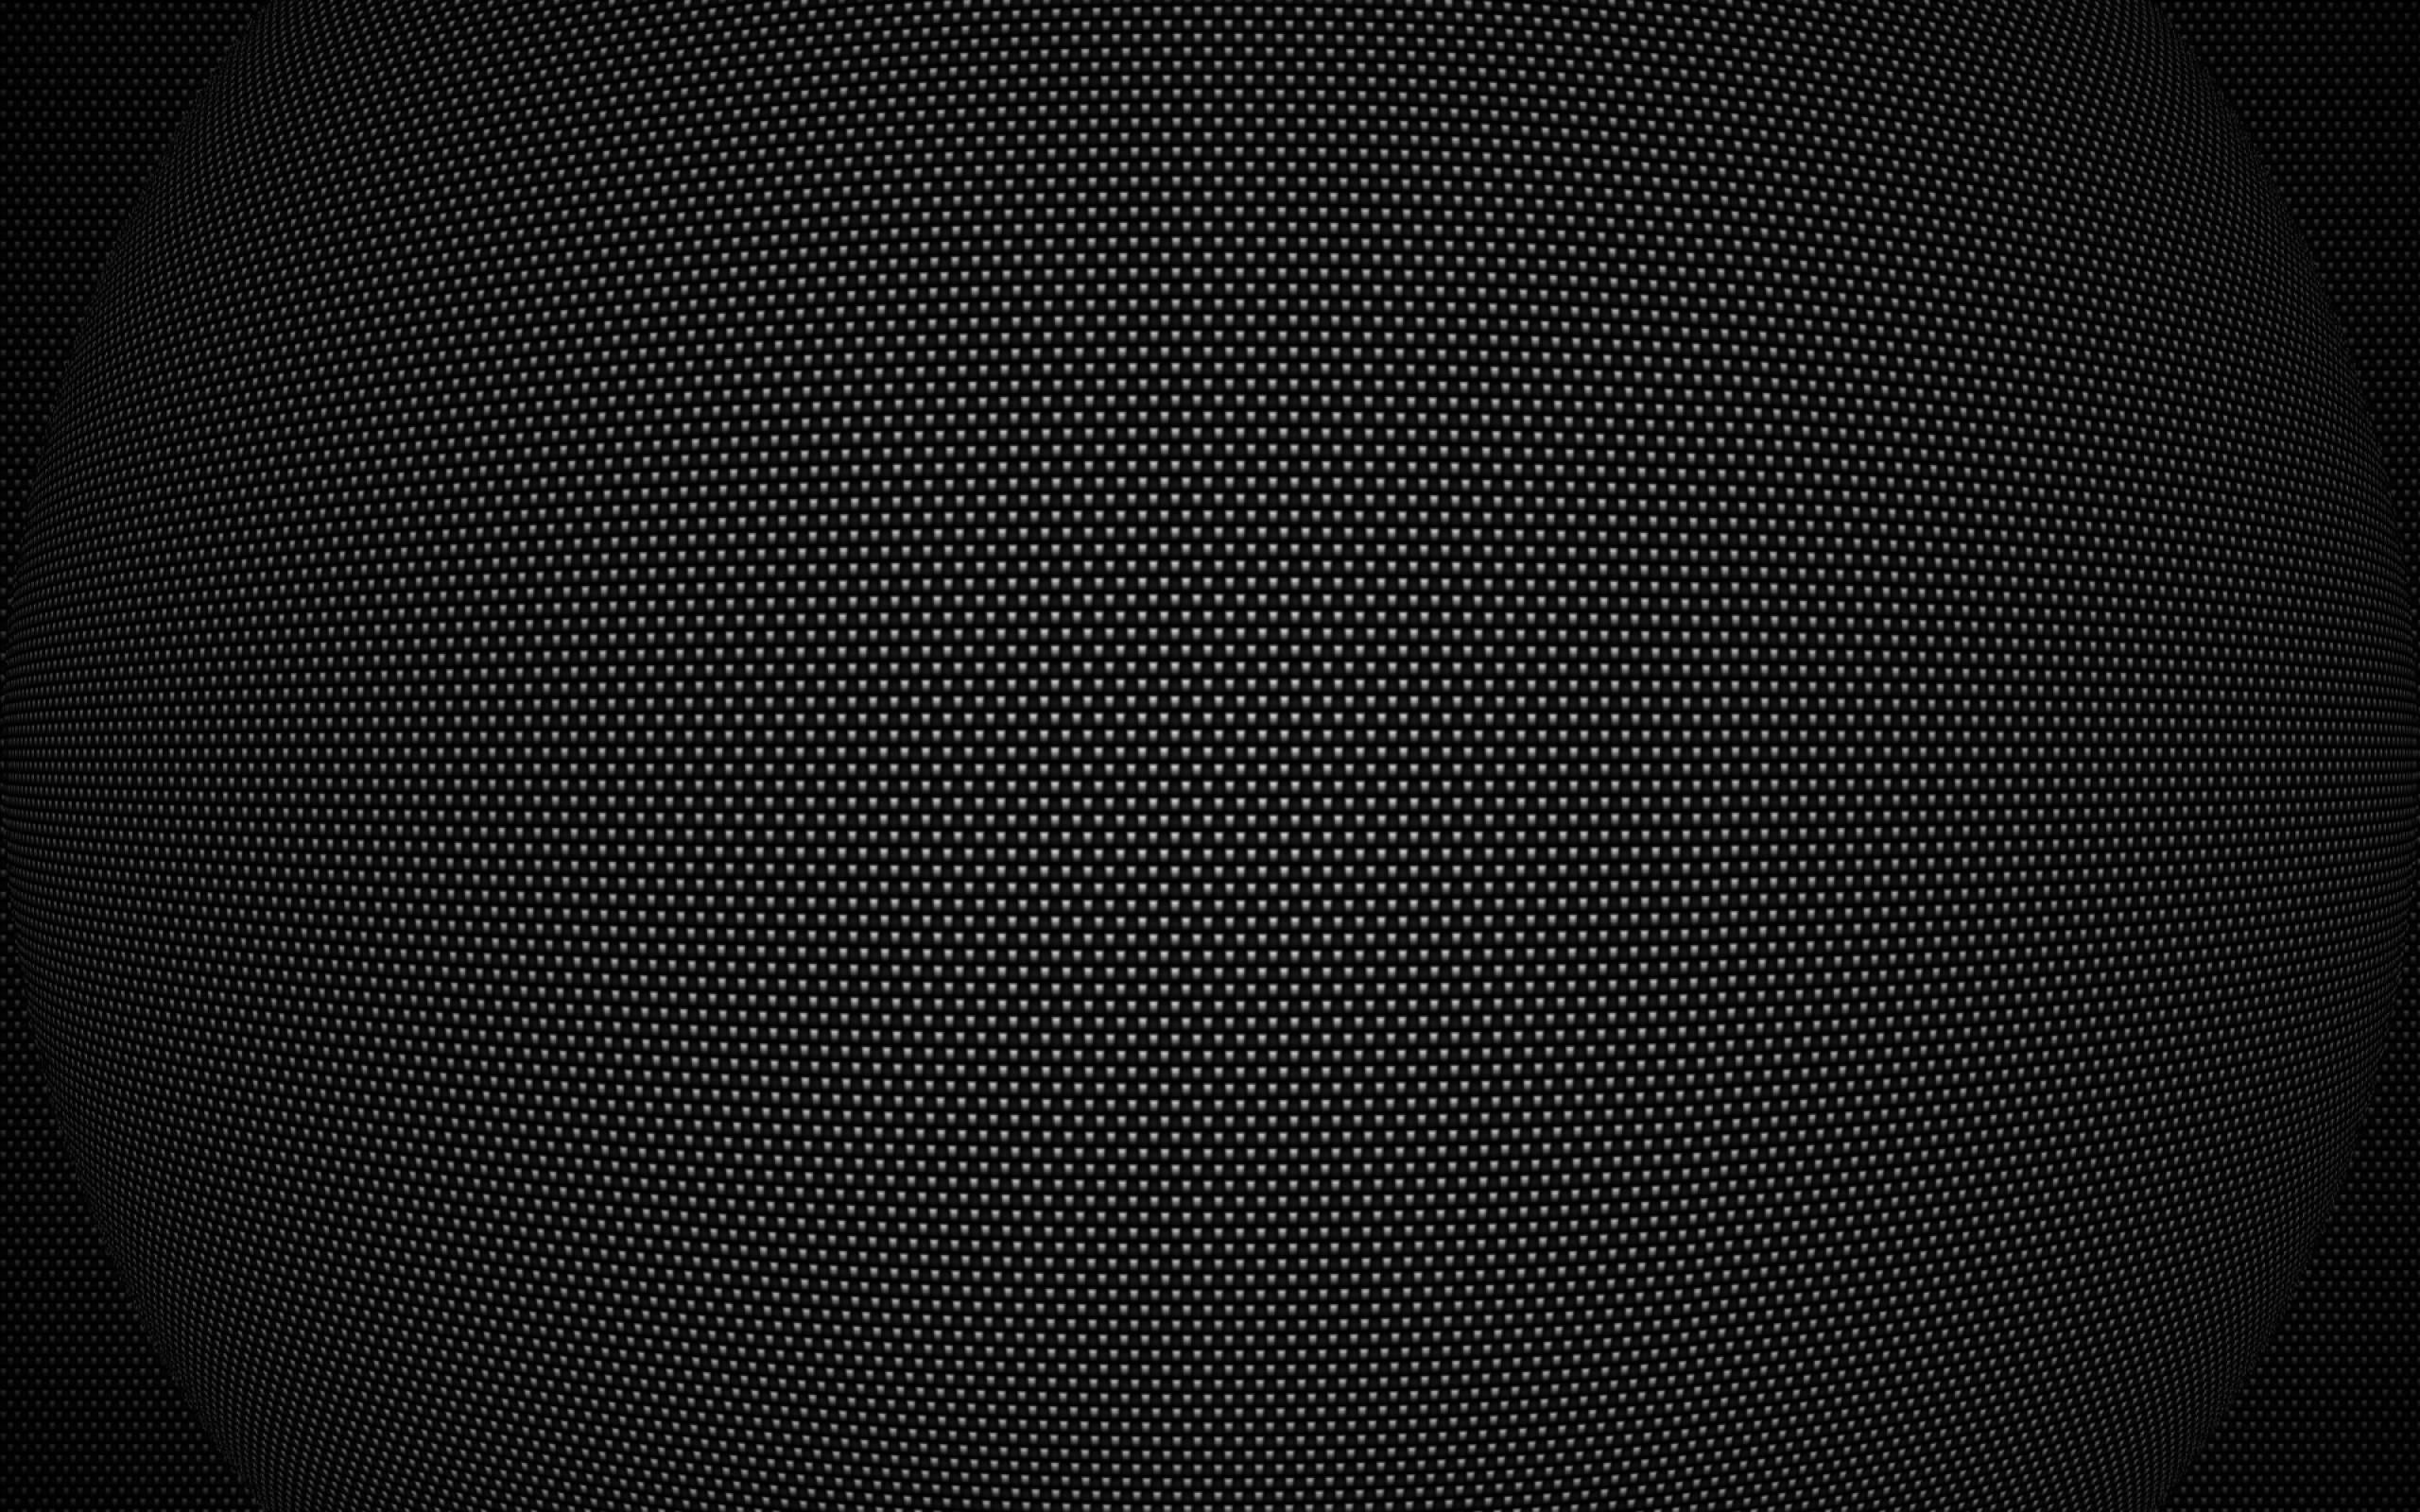 Hd Background Black Posted By John Mercado